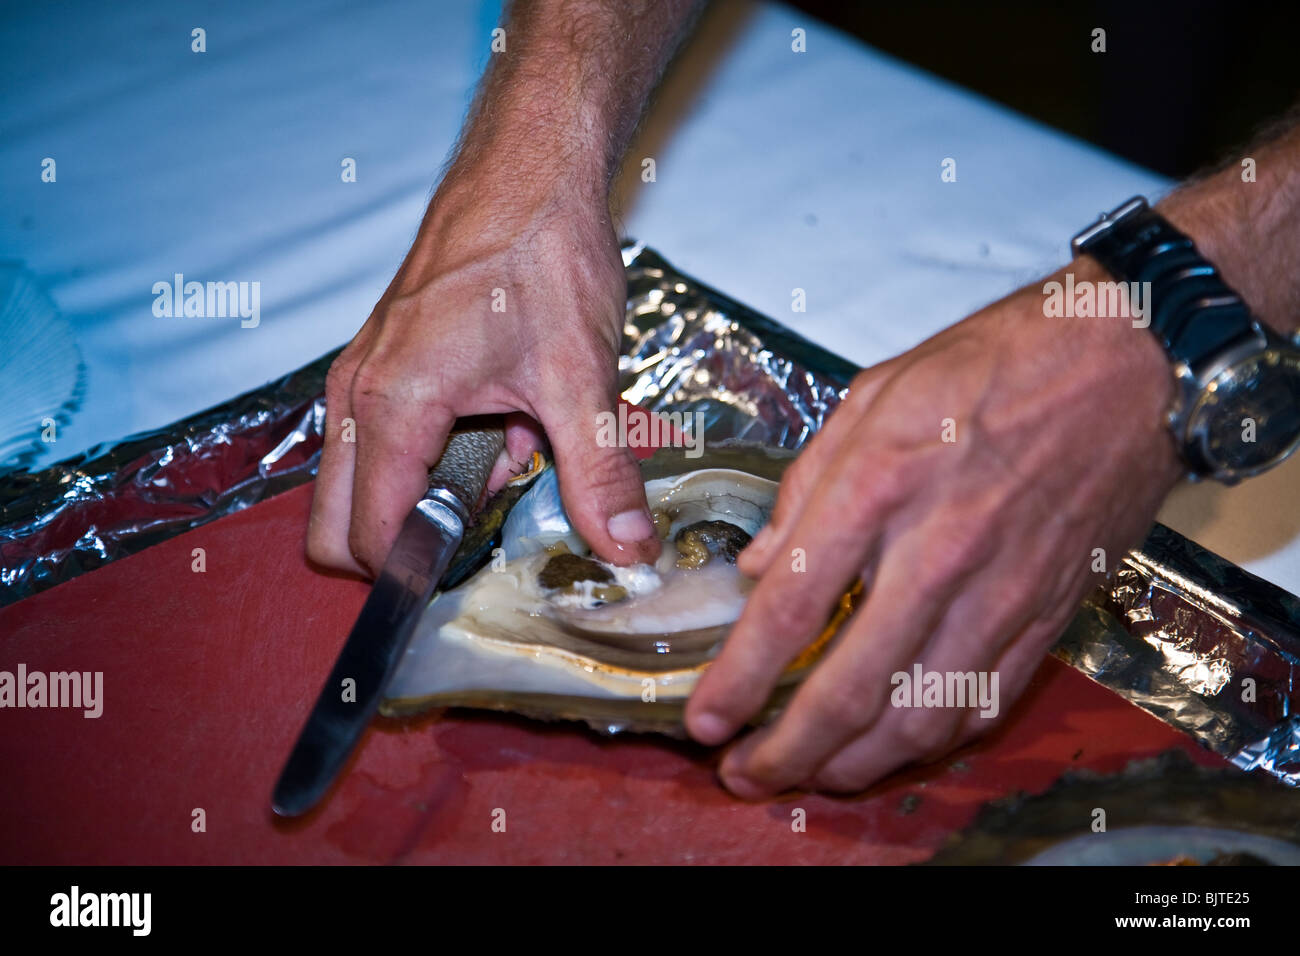 demonstration of a pearl shell opening and grading Western Australia Paspaley Pearl Farm - Stock Image